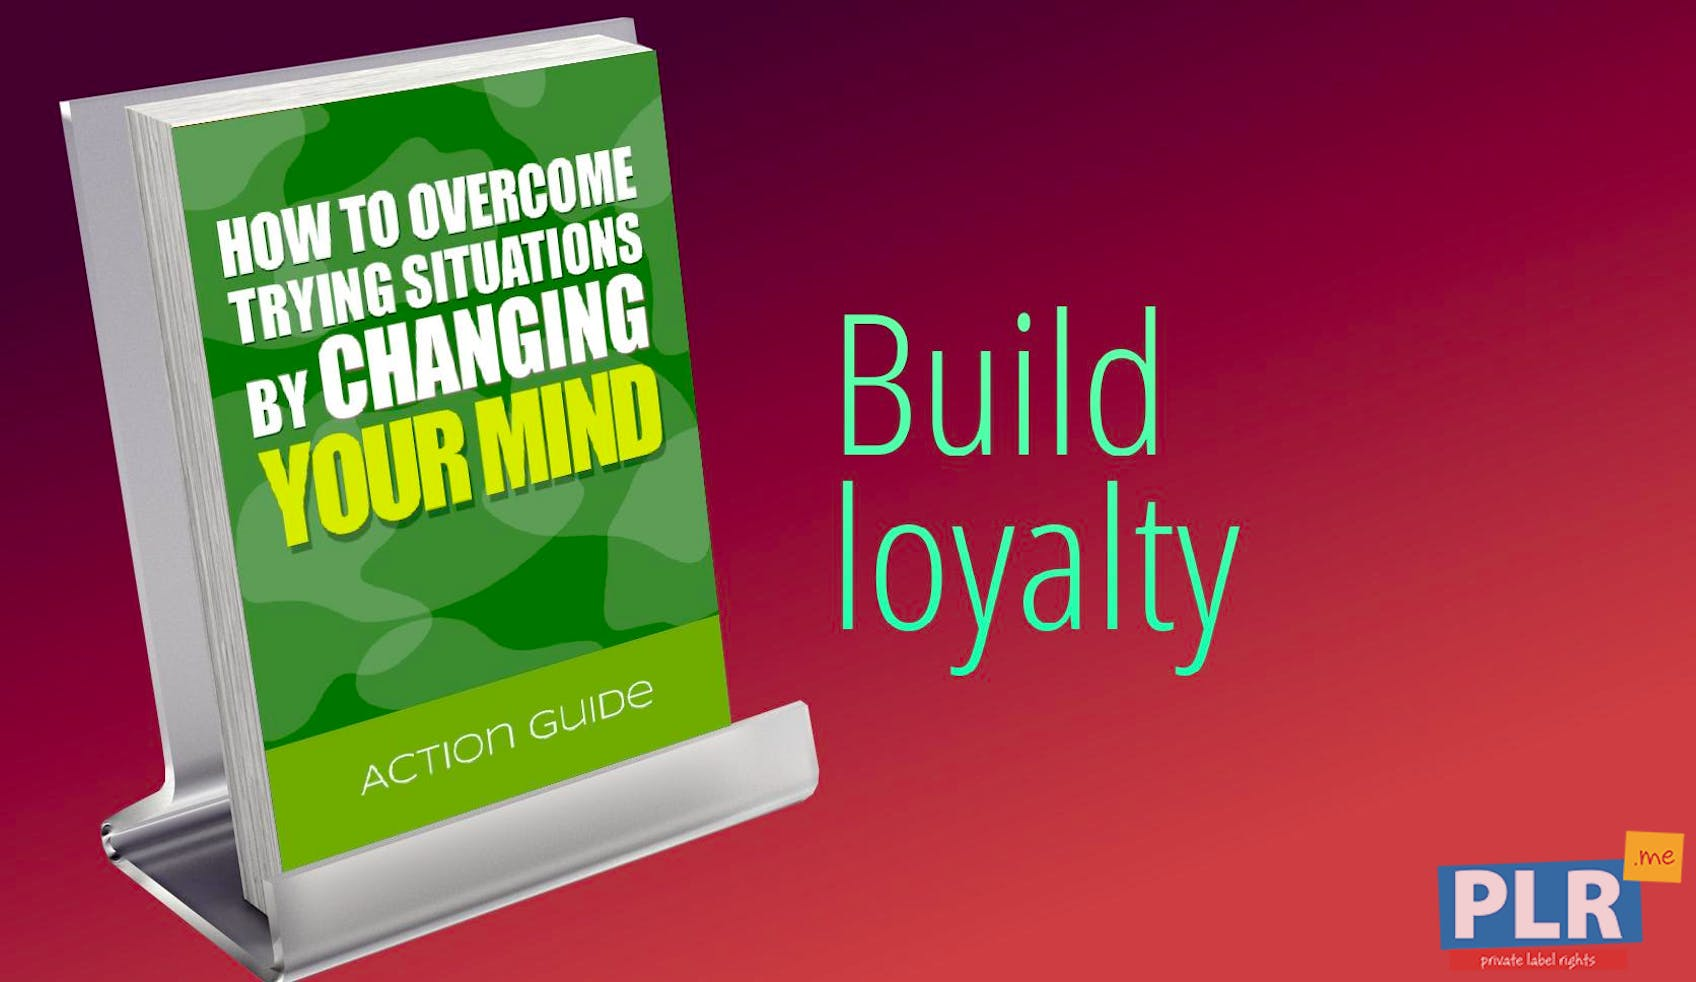 How To Overcome Trying Situations By Changing Your Mind Action Guide